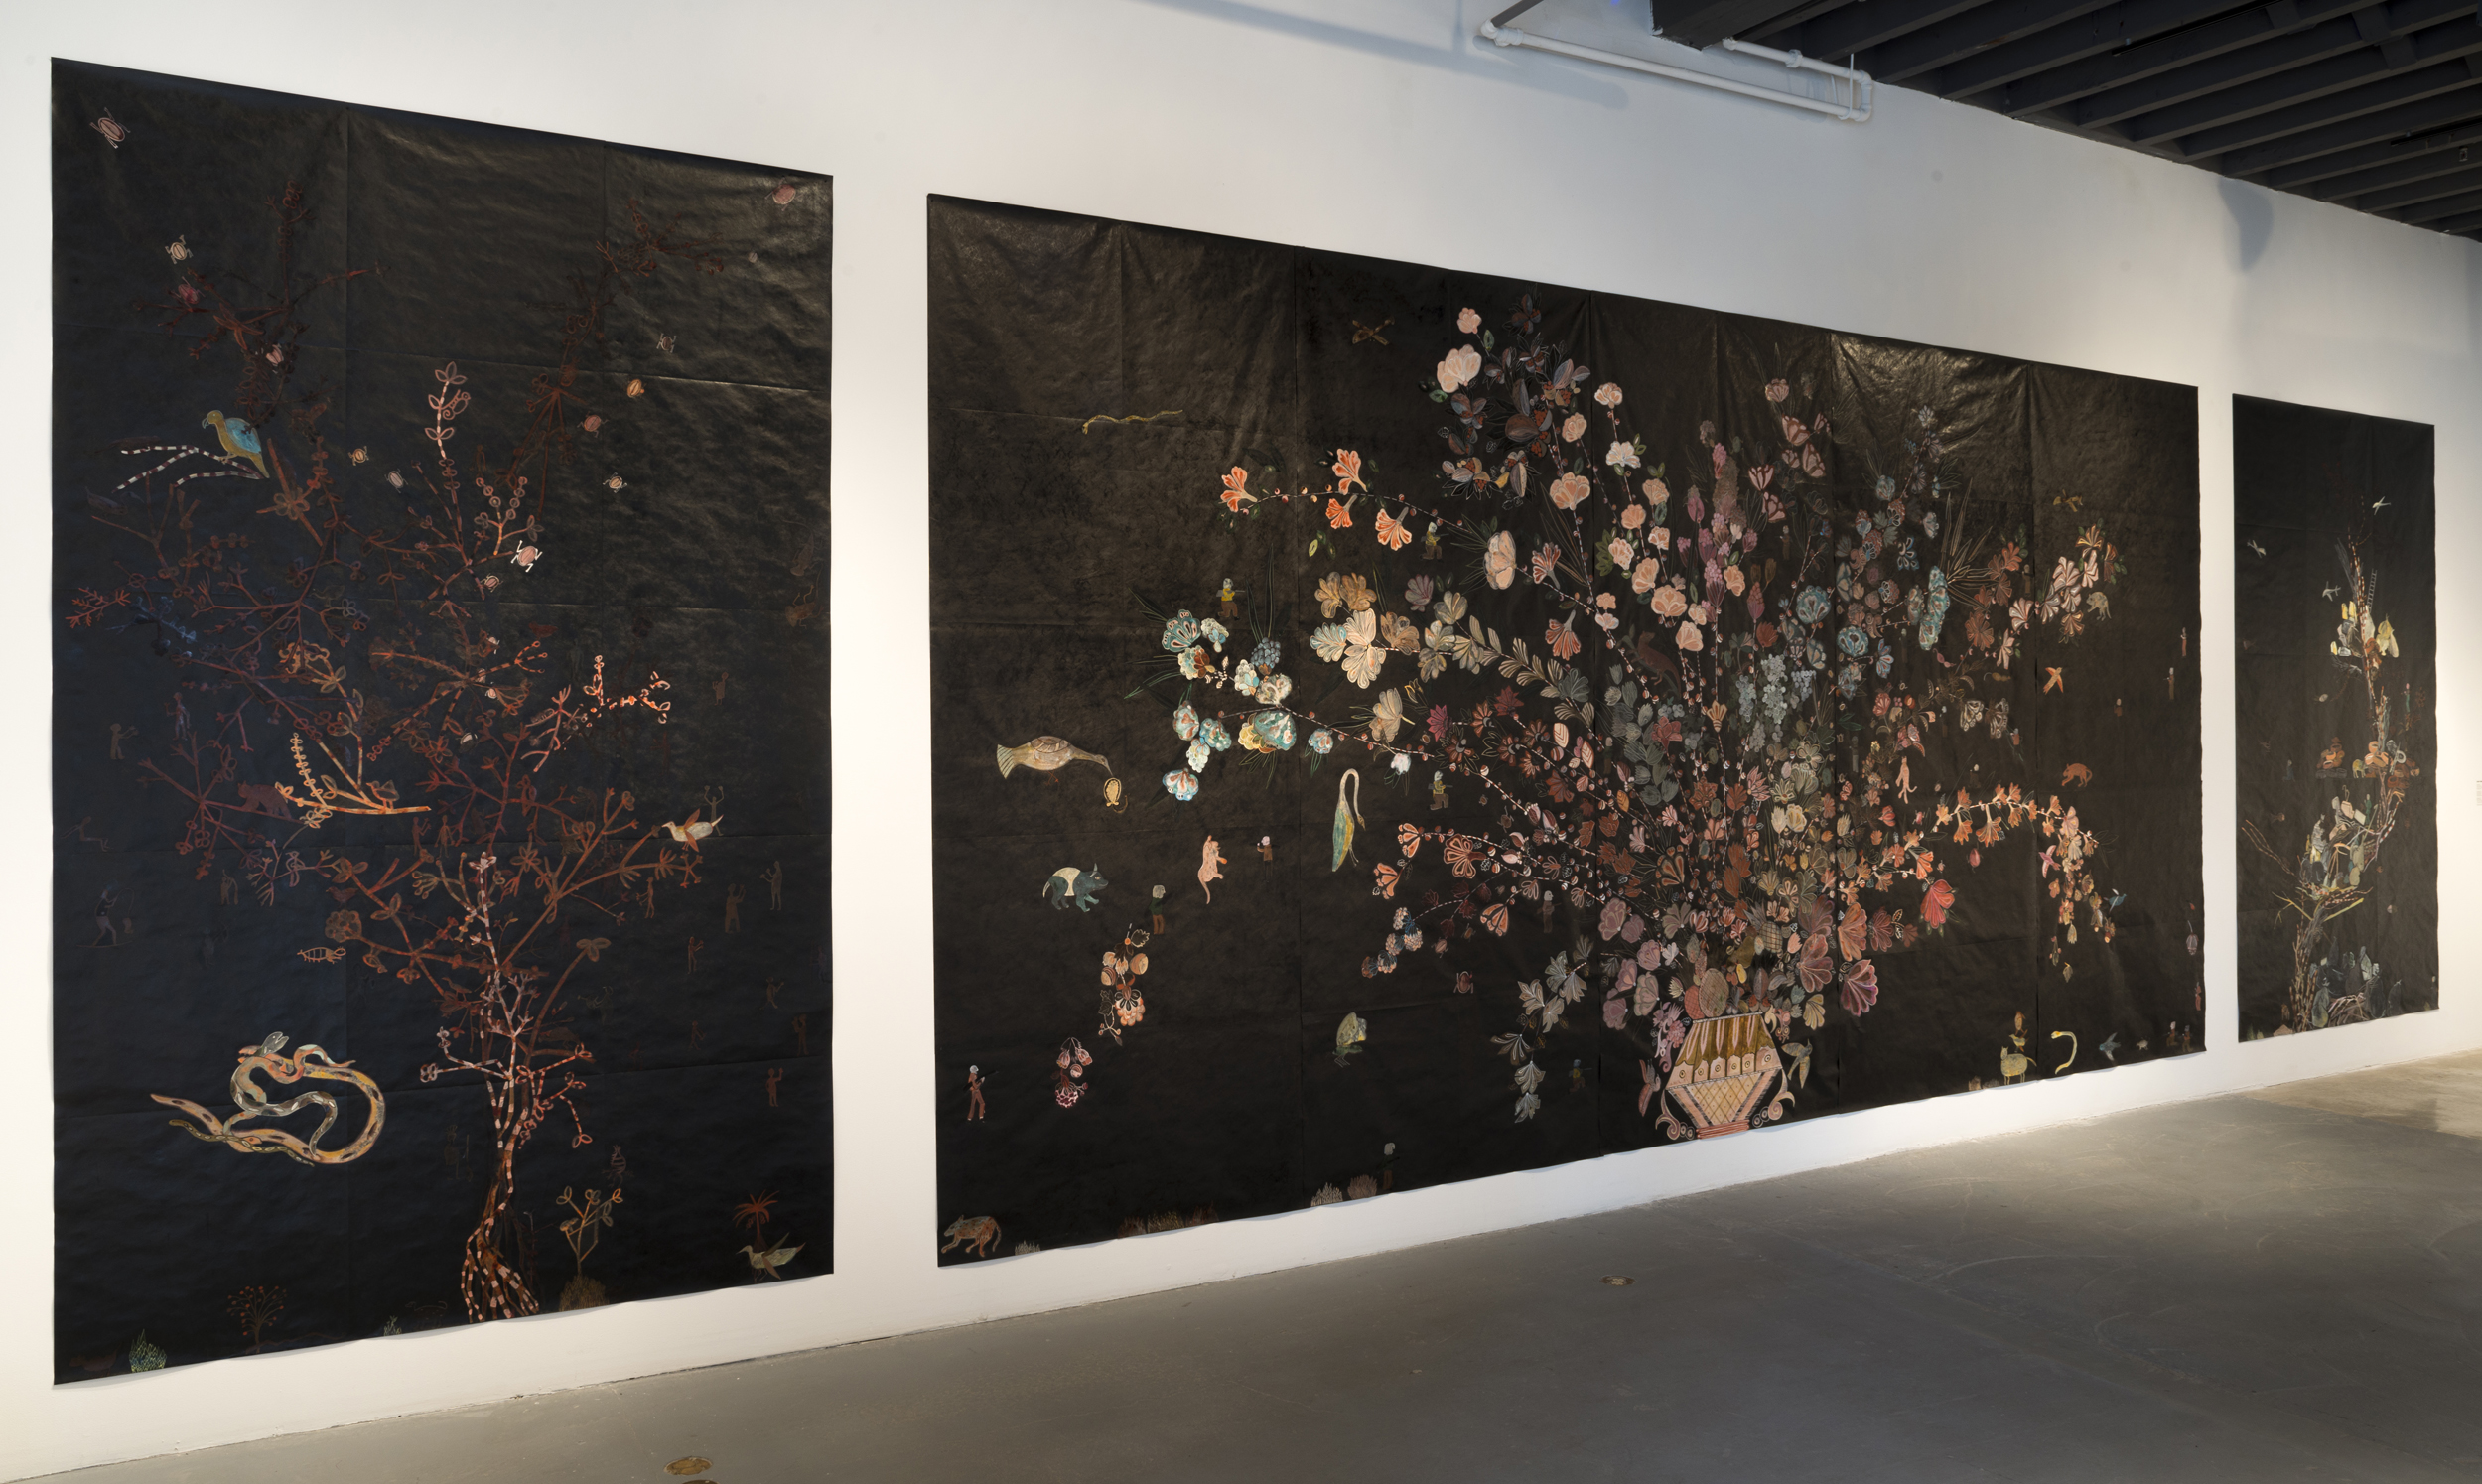 Nancy Friedemann-Sánchez Monarchs, The Bemis Center for Contemporary Arts, 2017-2018